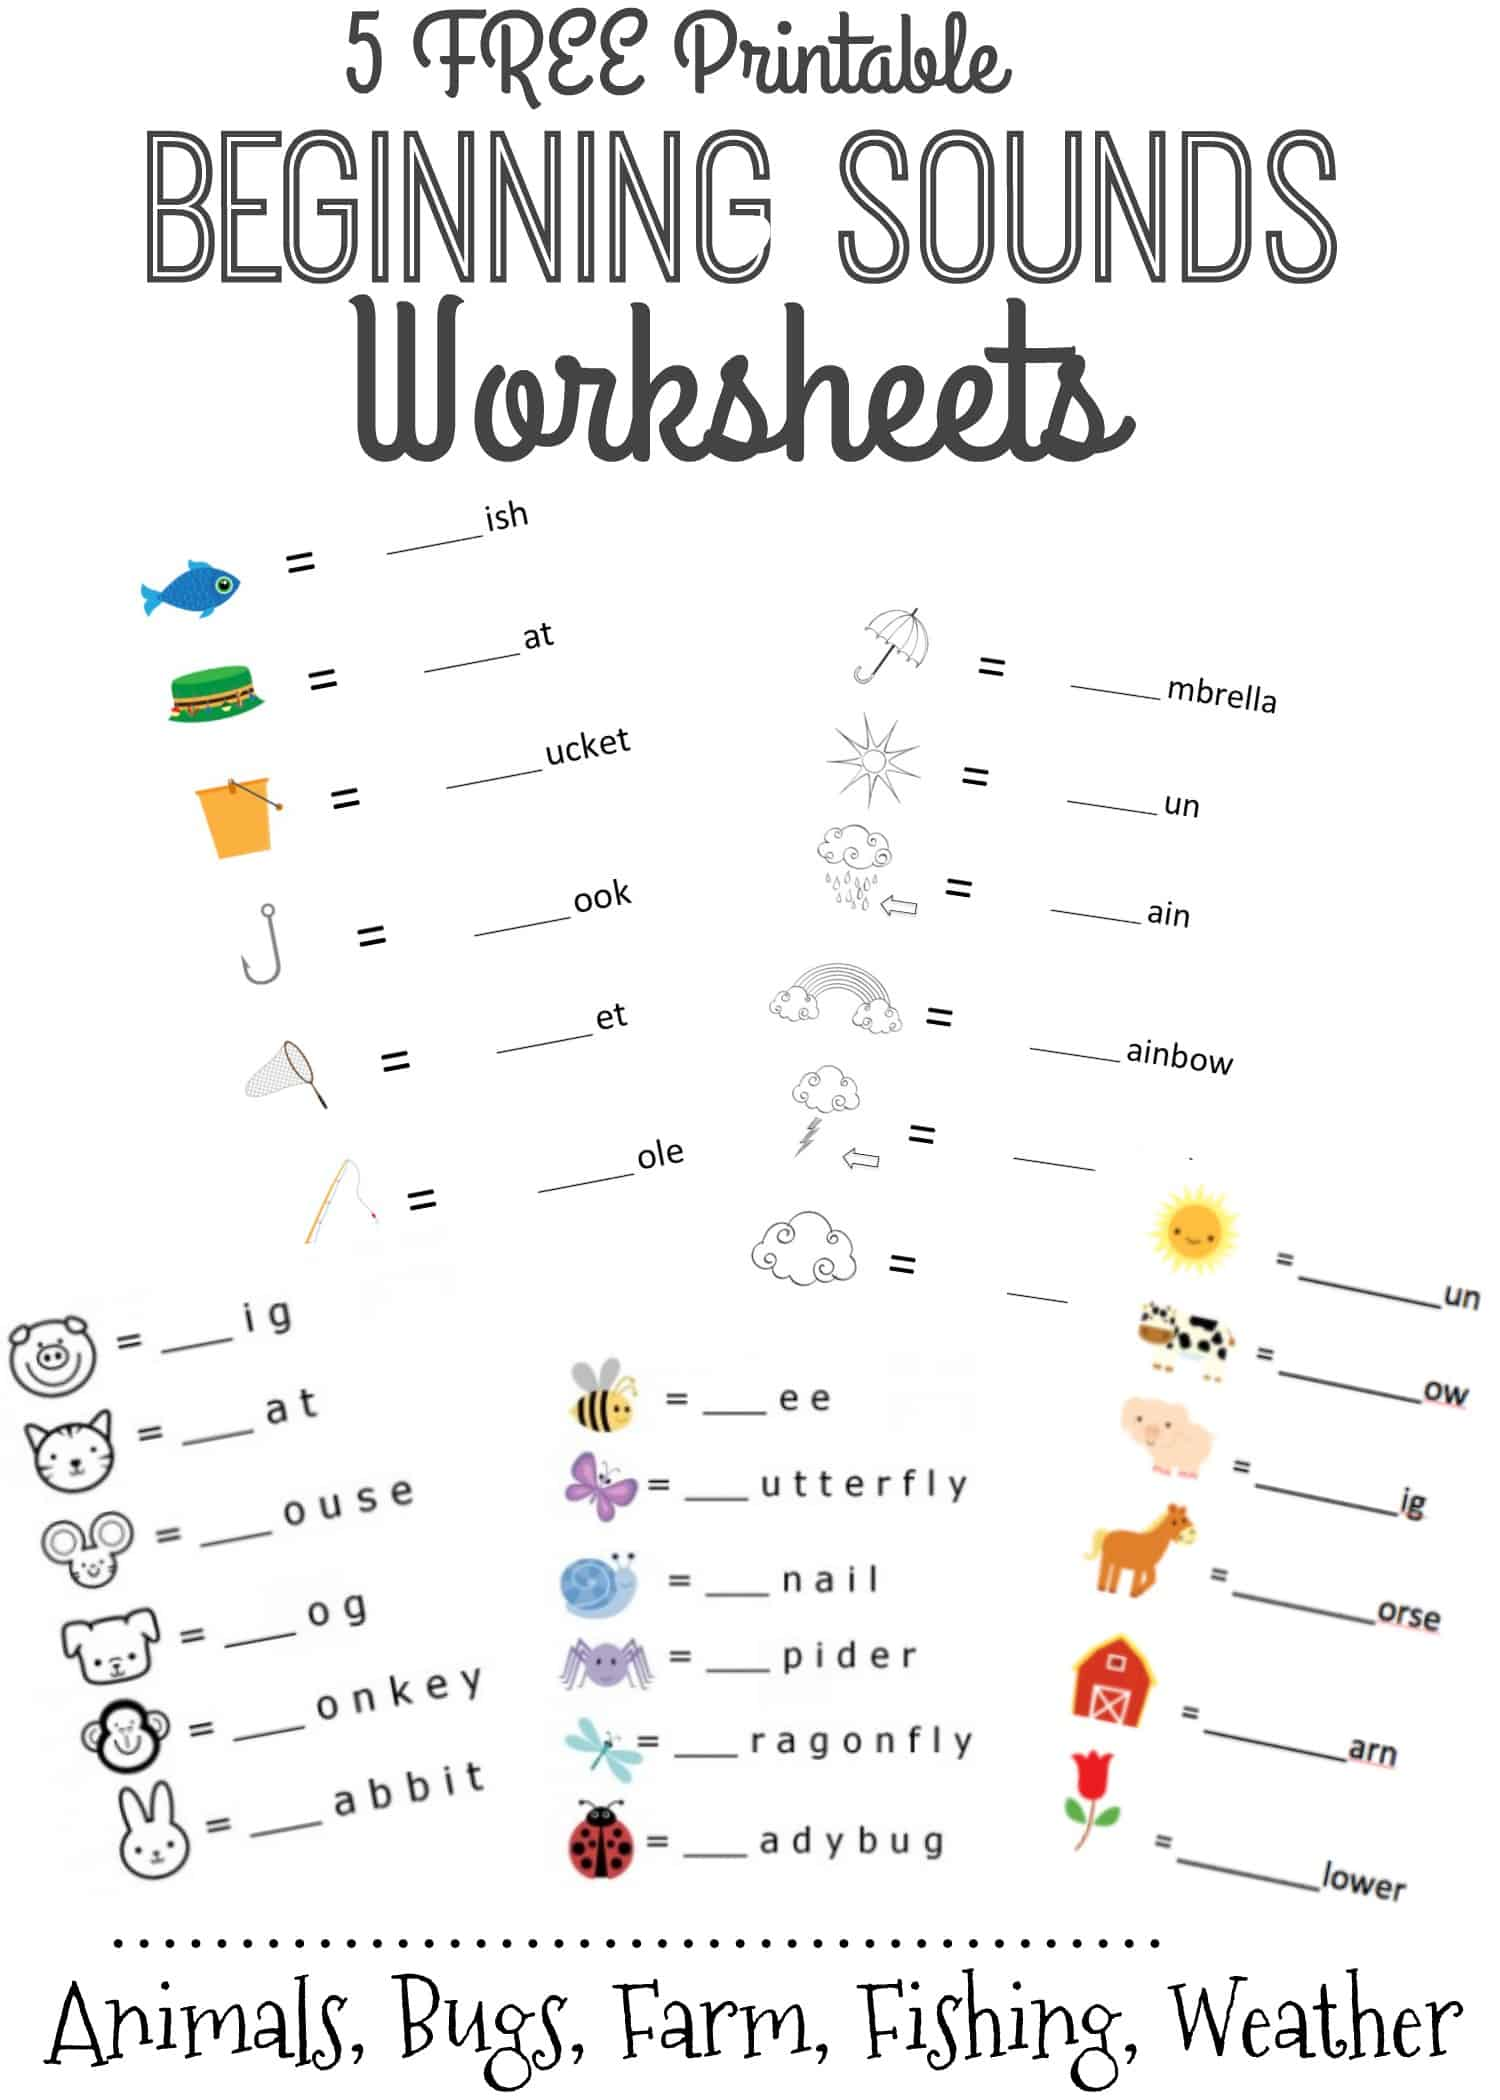 95 Year 5 Phonics Worksheets